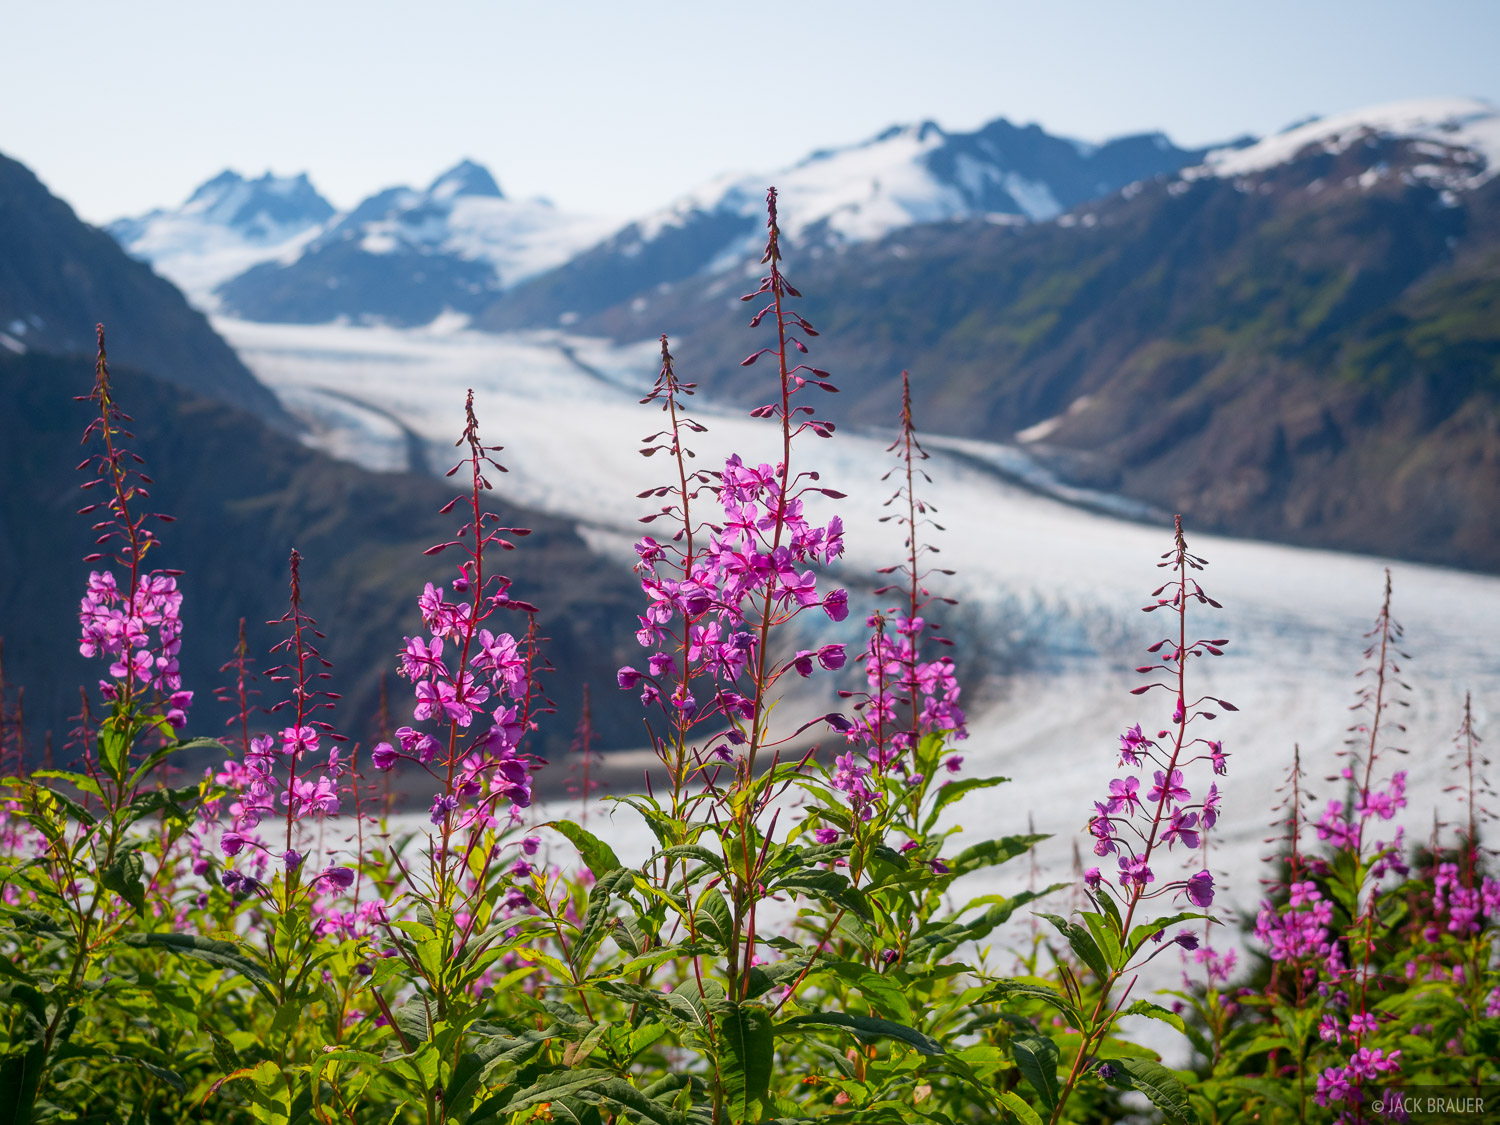 Alaska, Hyder, Salmon Glacier, wildflowers, photo